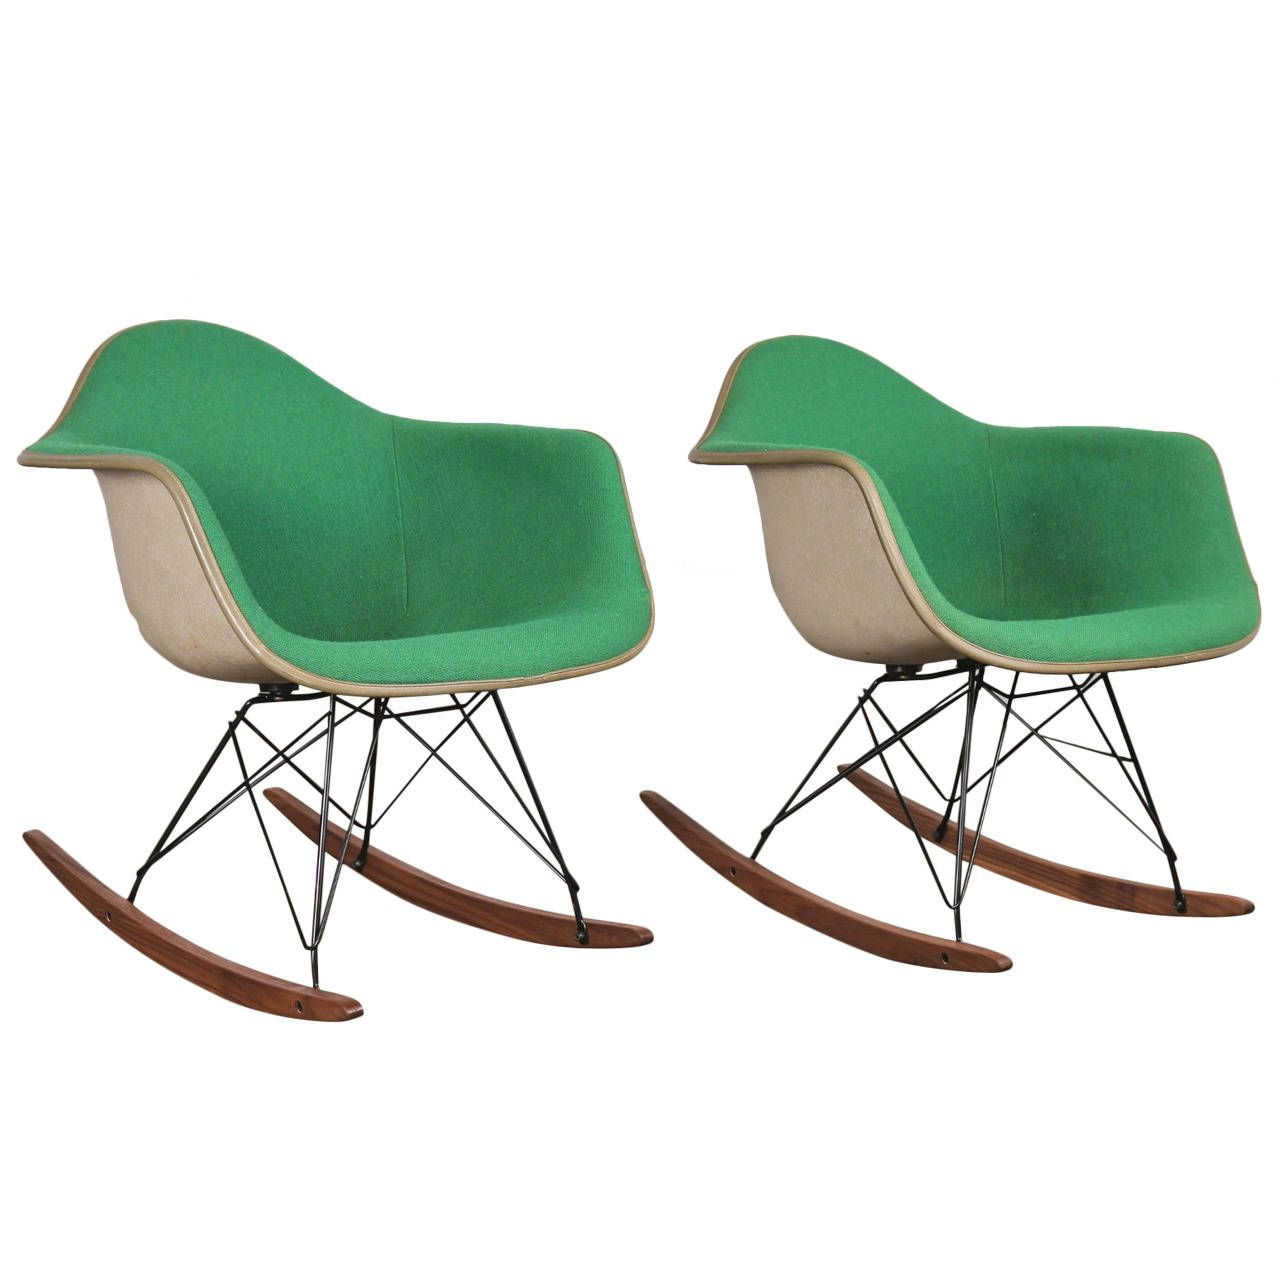 Upholstered Rocking Chair Vintage Green Eames Upholstered Rocking Chair One Left